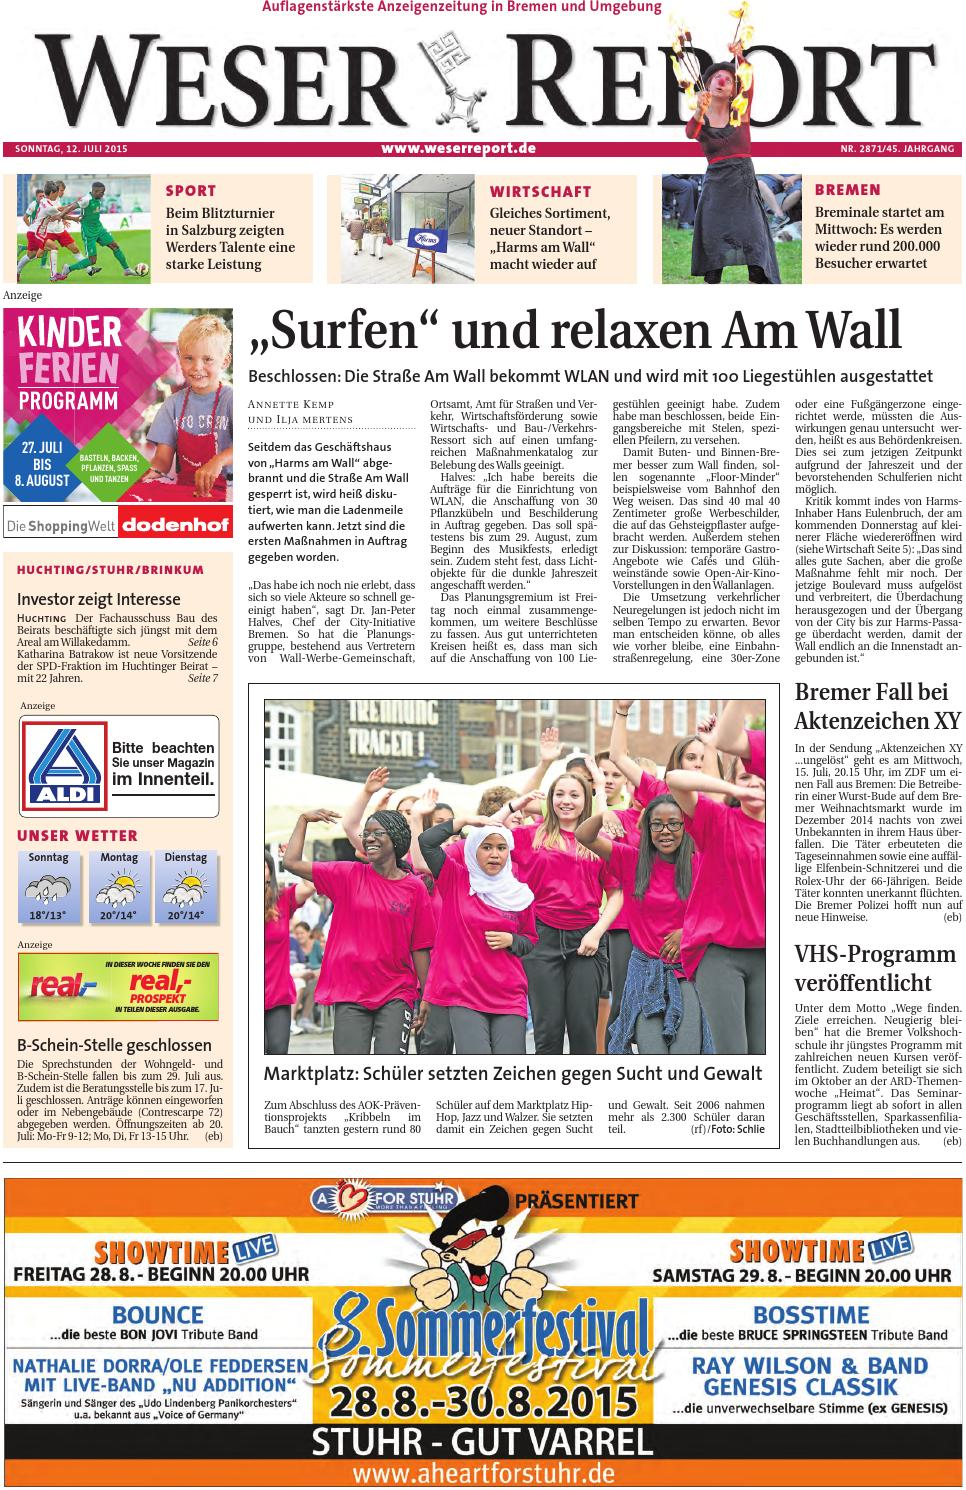 Weser Report Huchting Stuhr Brinkum vom 12.07.2015 by KPS